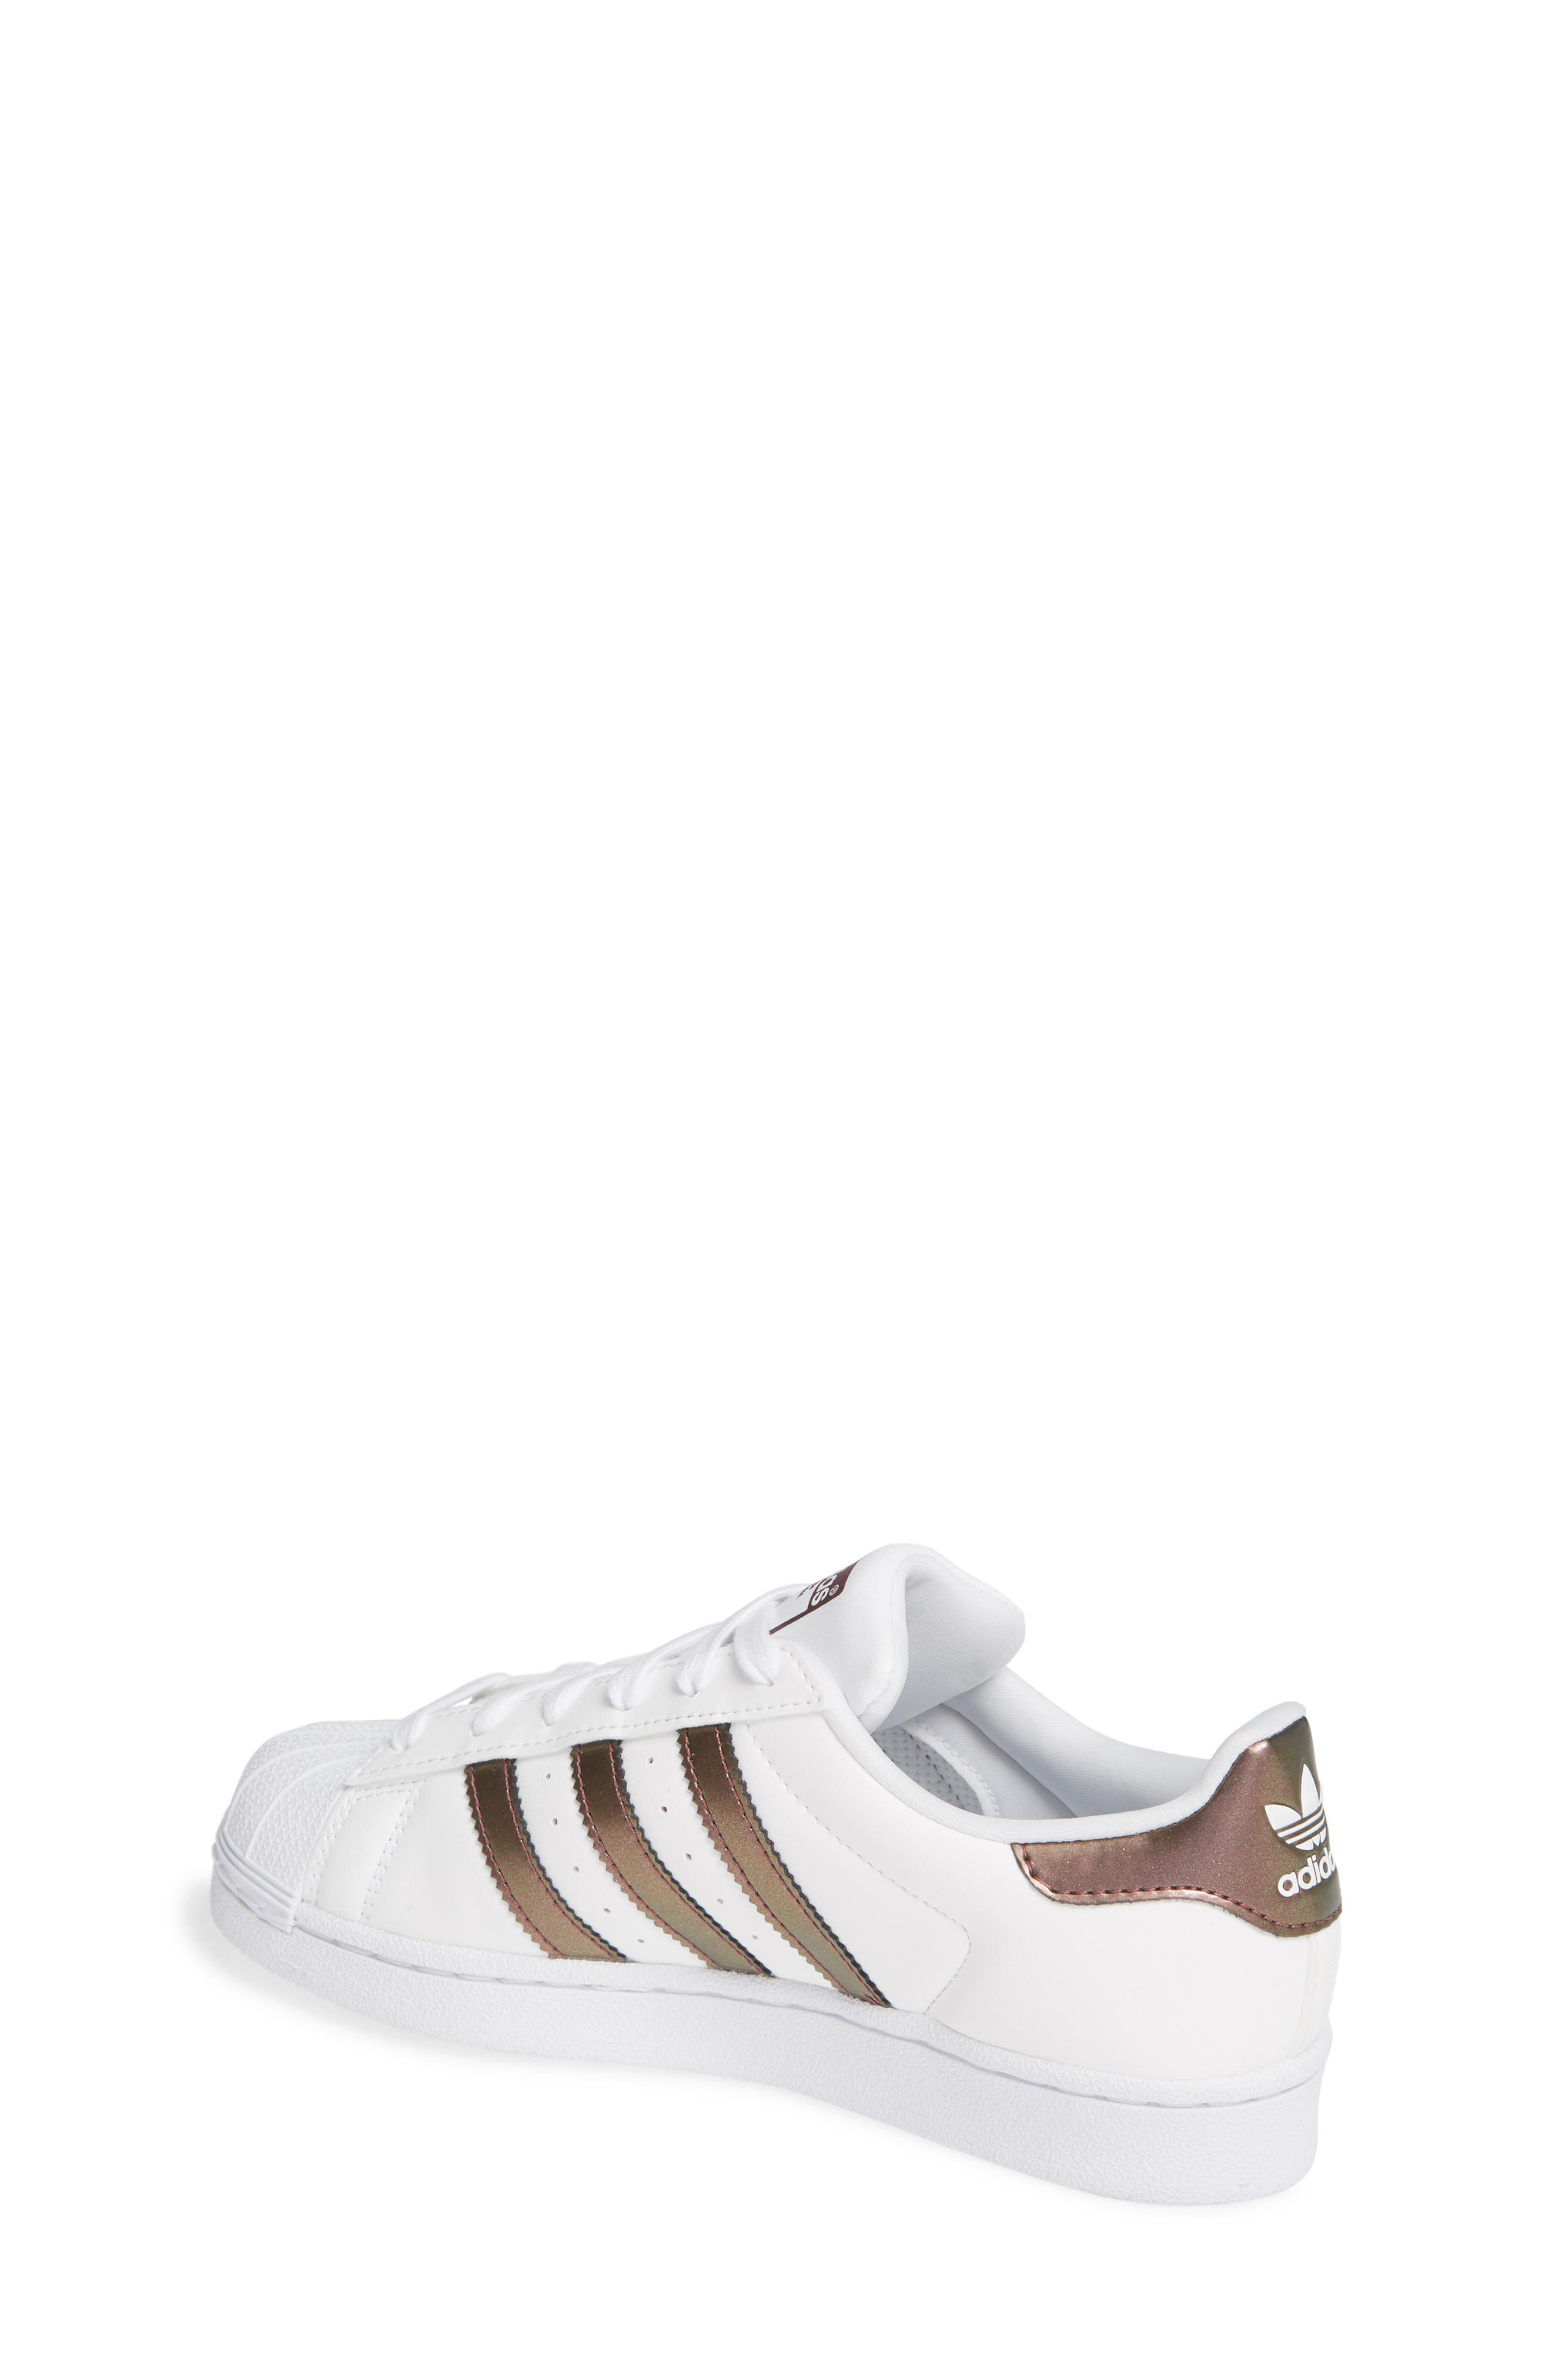 'Superstar II' Sneaker,                             Alternate thumbnail 2, color,                             FOOTWEAR WHITE/COPPER